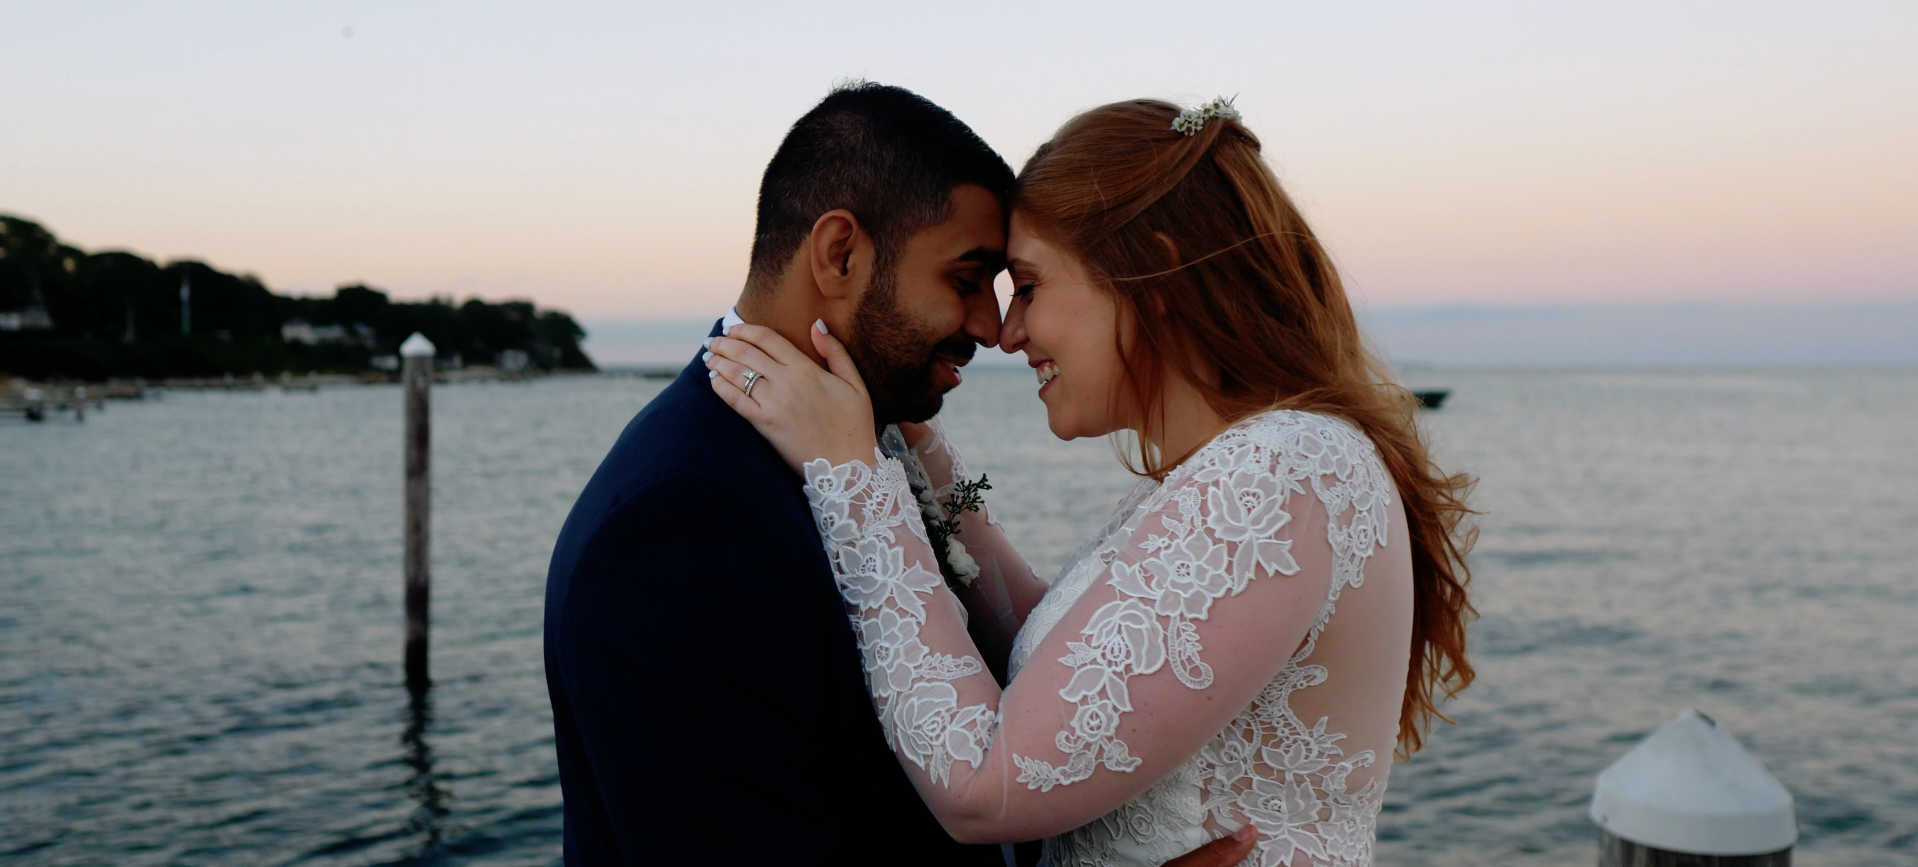 Nicole + Angad | Oak Bluffs, Massachusetts | Vineyard Haven Yacht Club, Oak Bluffs